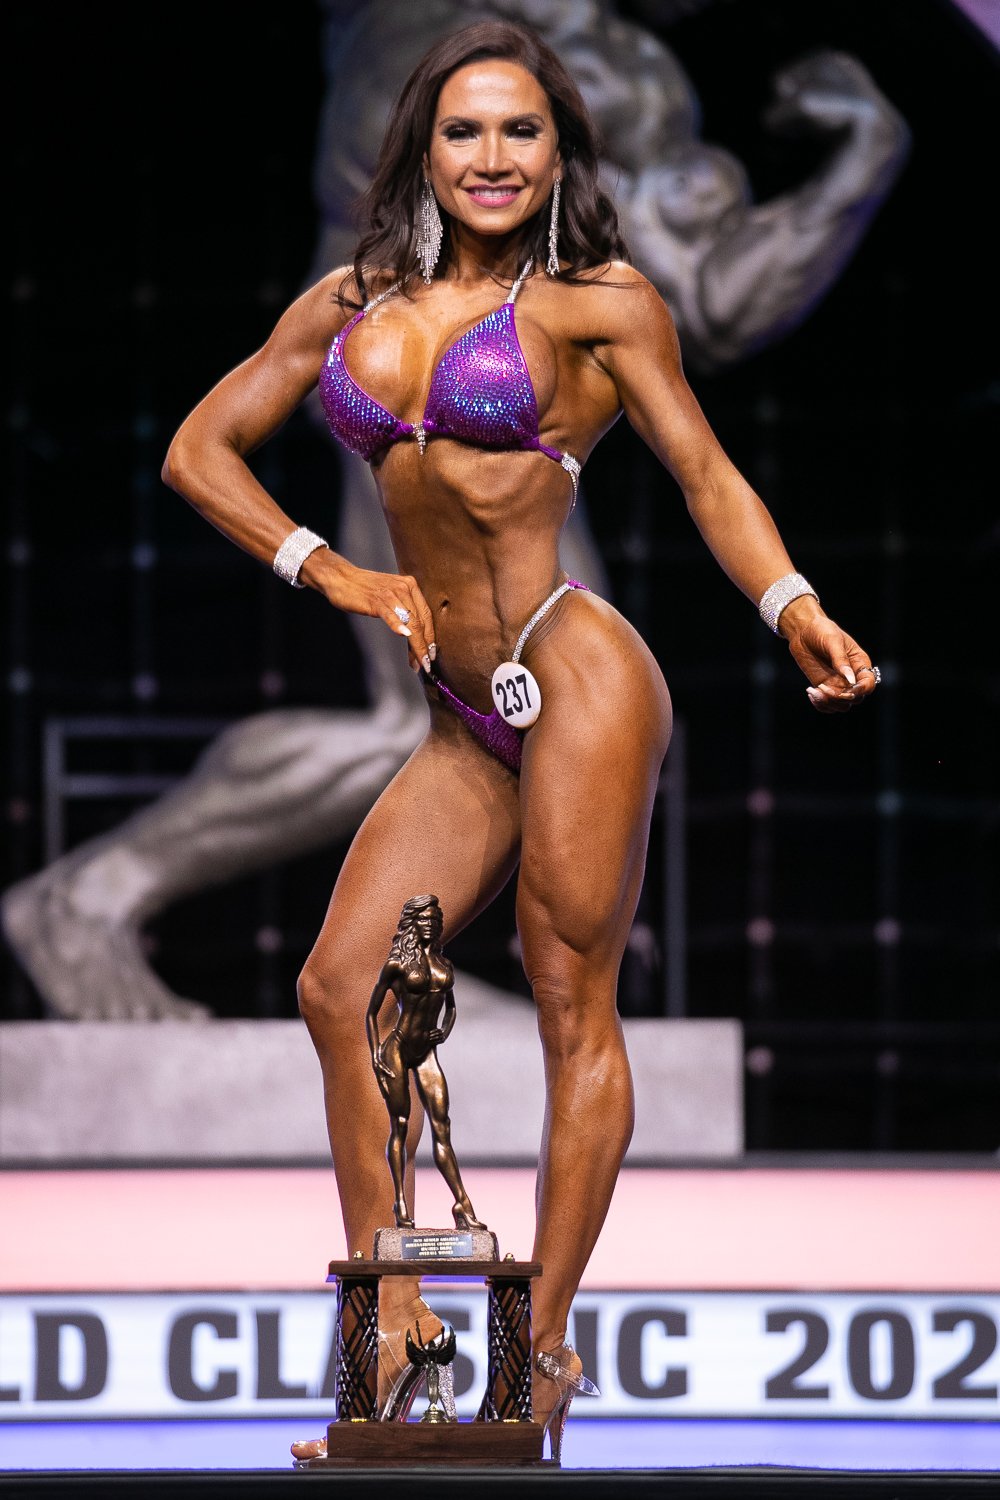 Master's Bikini Overall Winner Yenirfer Zerpa #237 photo by Darren Burns